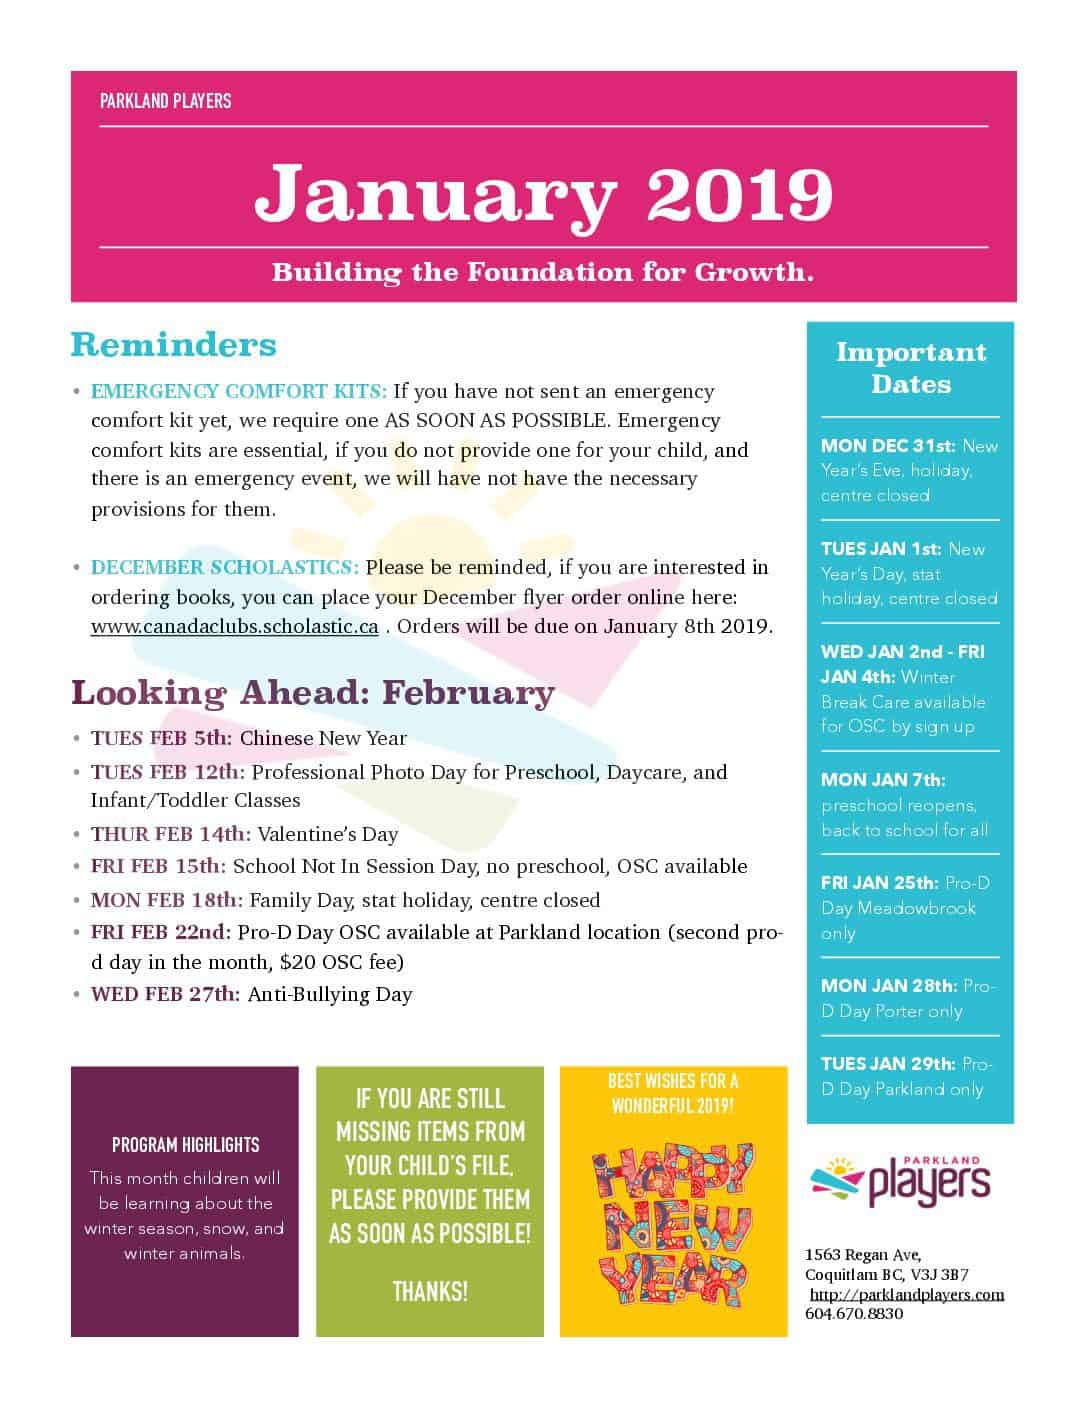 January-2019-Newsletter-1-pdf  Primary Newsletter Templates Pdf on create your own printable, hr employee, lds relief society, chino california, cover design, february responsive classroom, safety box winter,